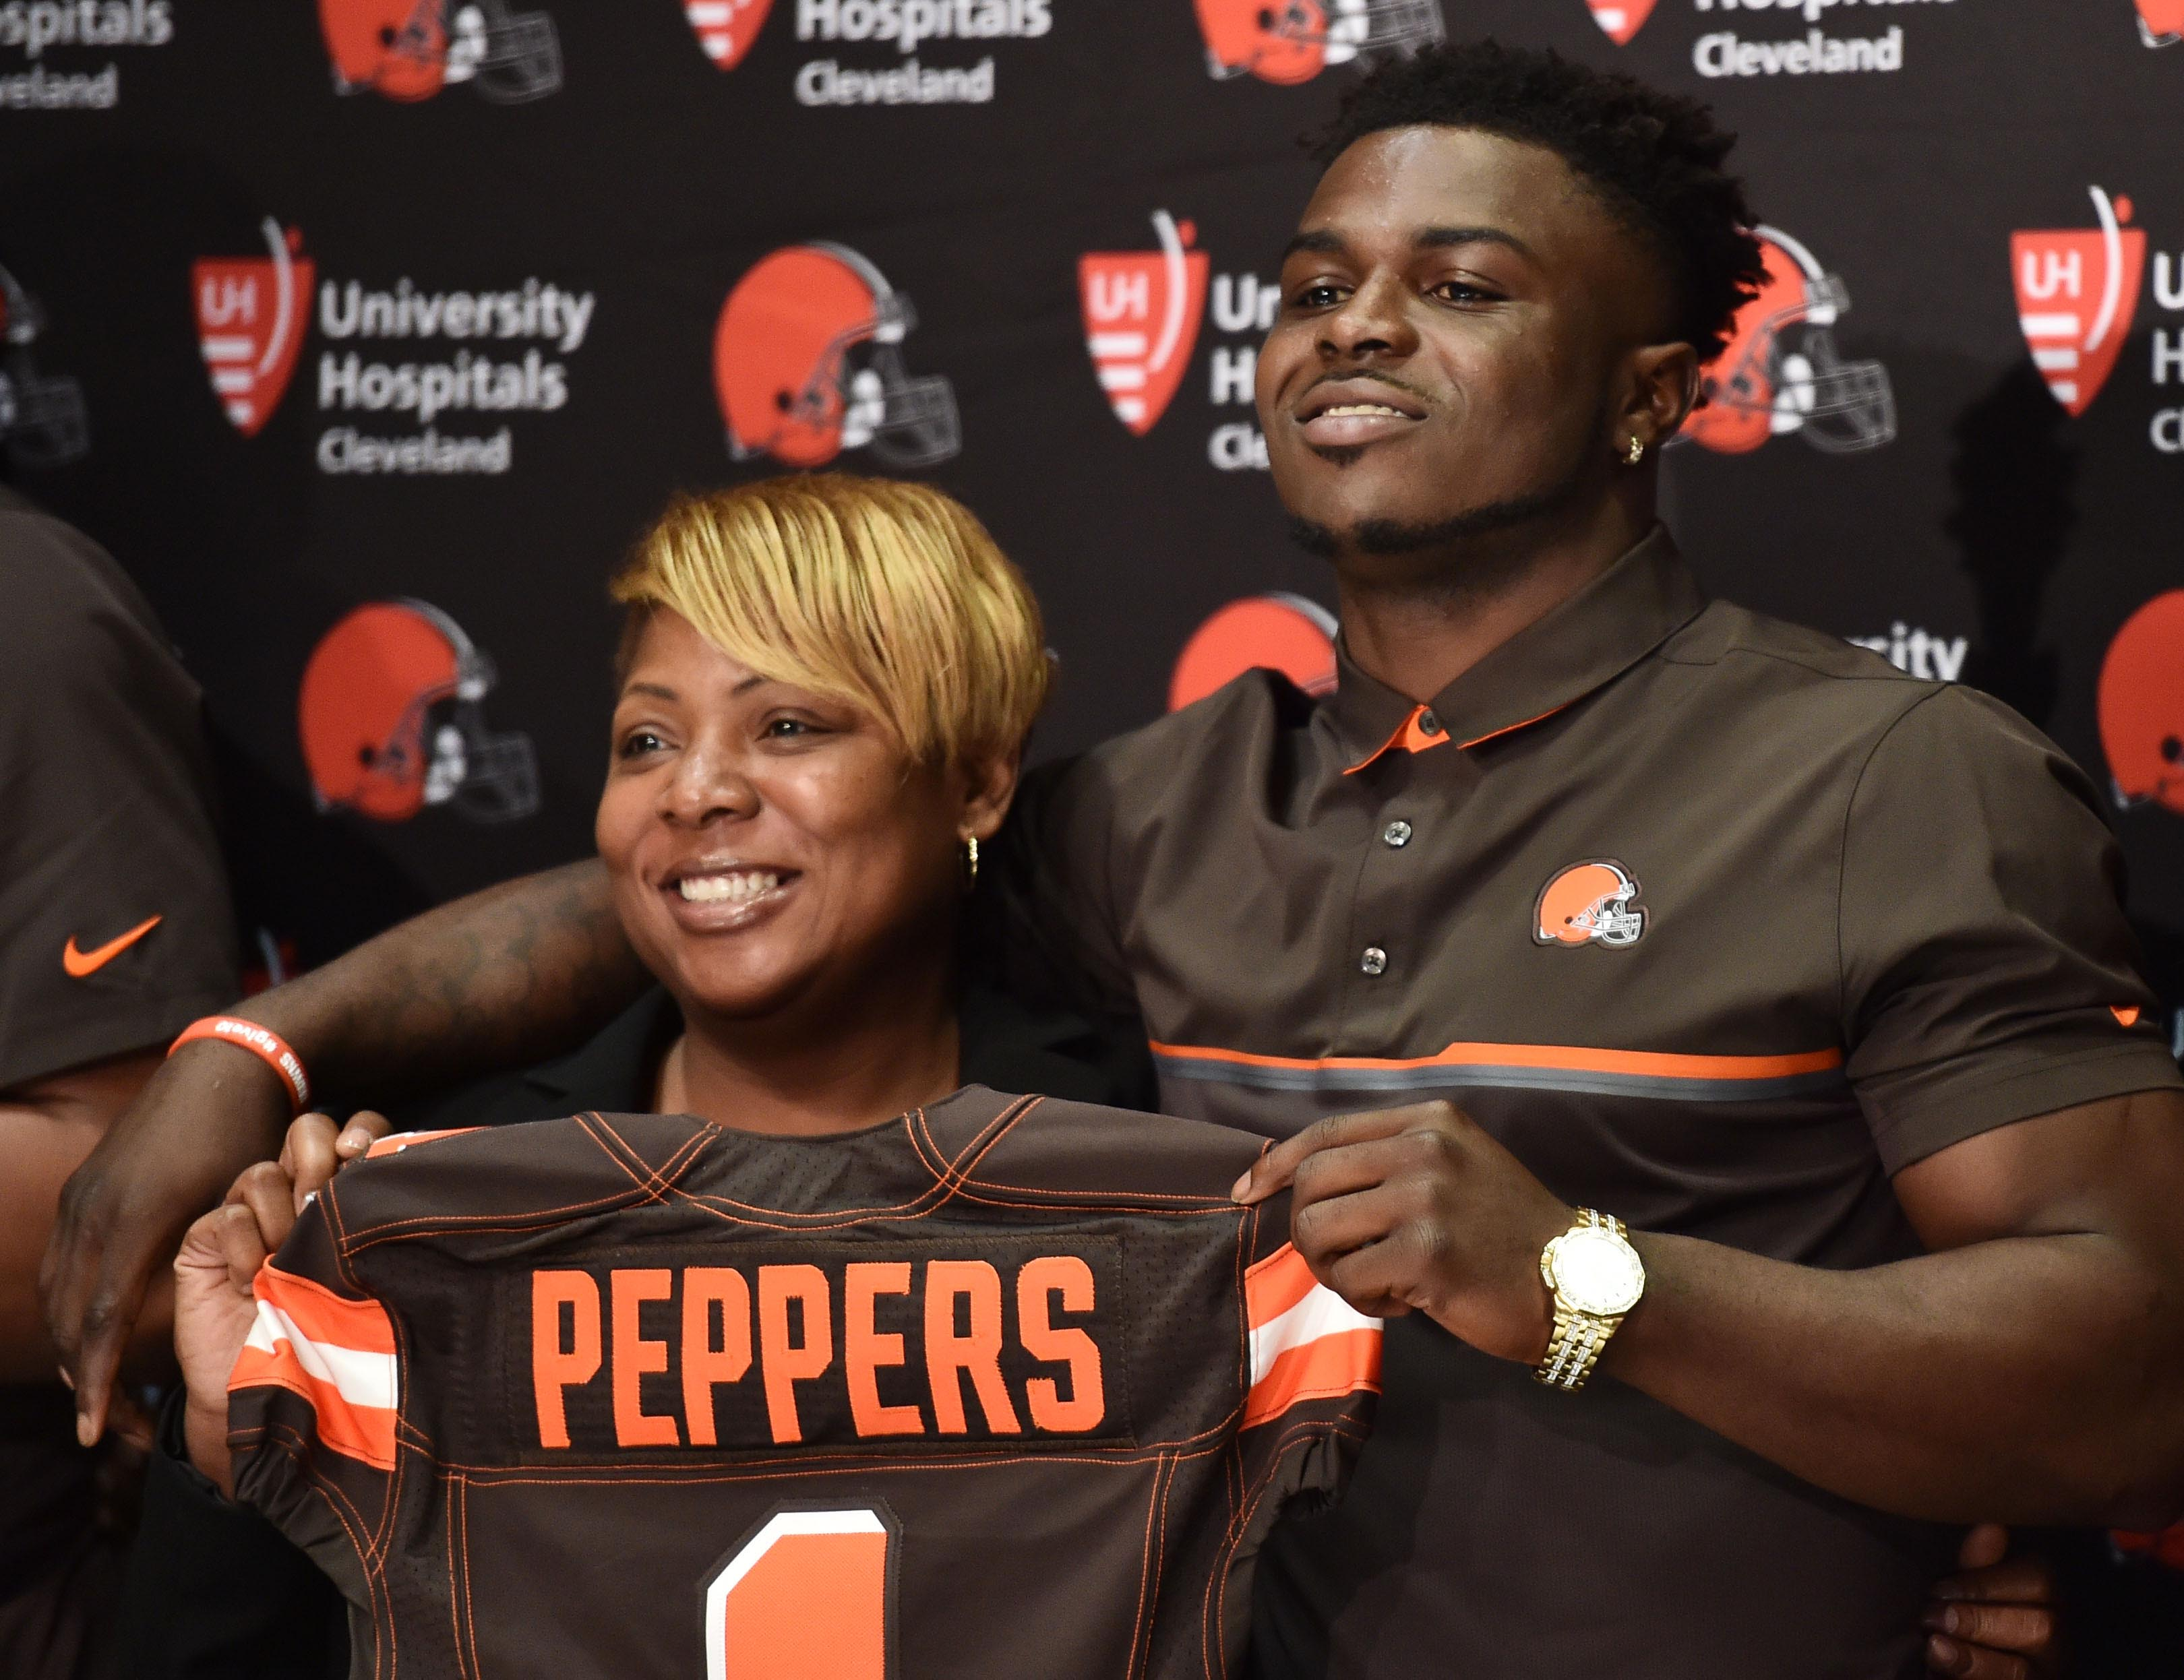 10034521-nfl-cleveland-browns-press-conference-1